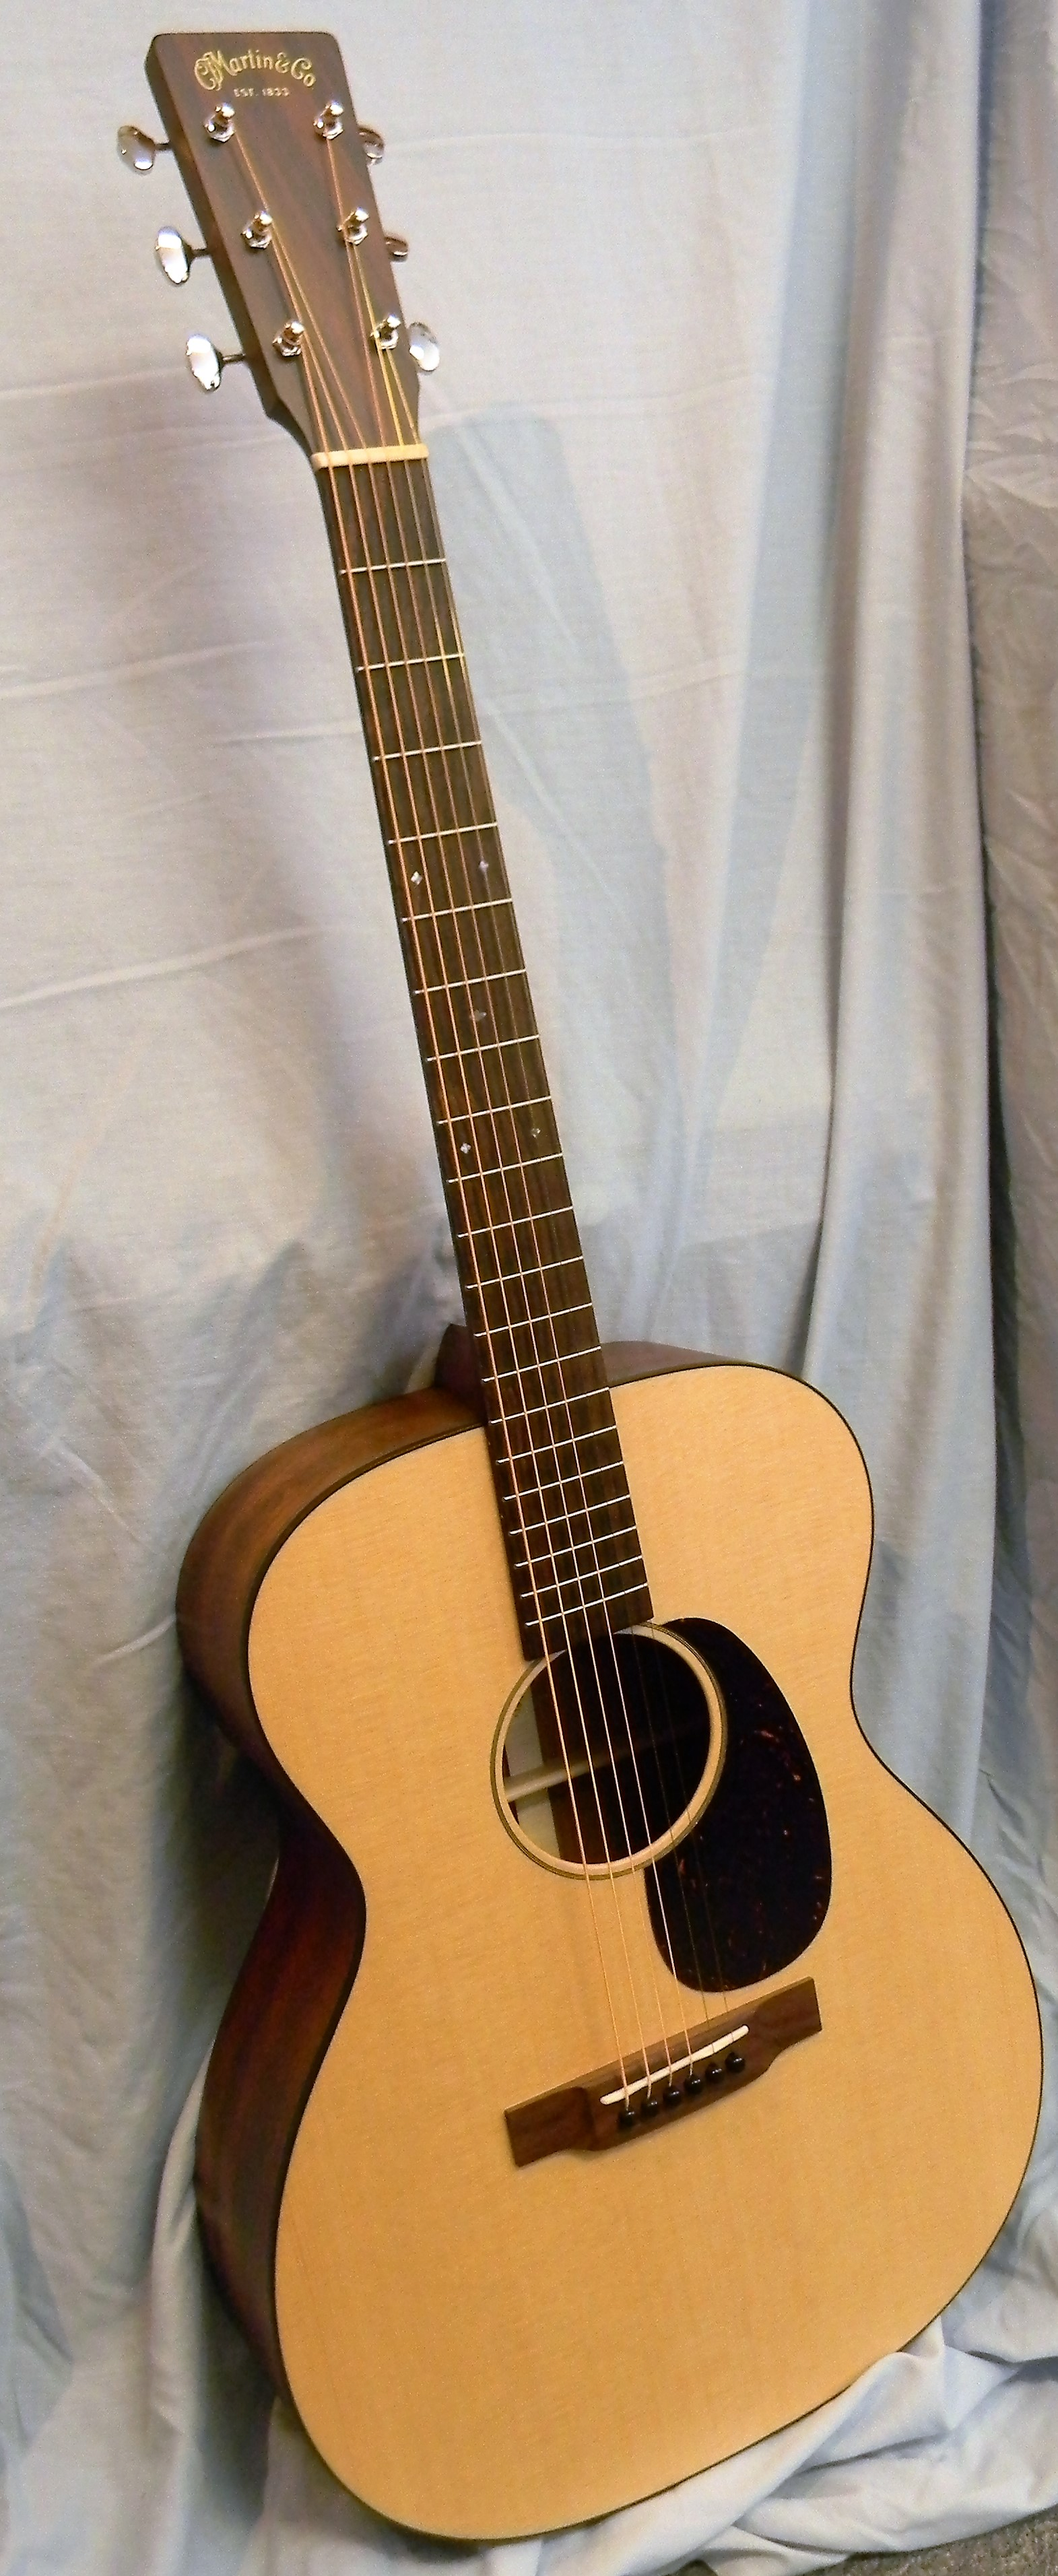 000-15 Special solid spruce and mahogany with rosewood bridge and fingerboard. $1,499.00